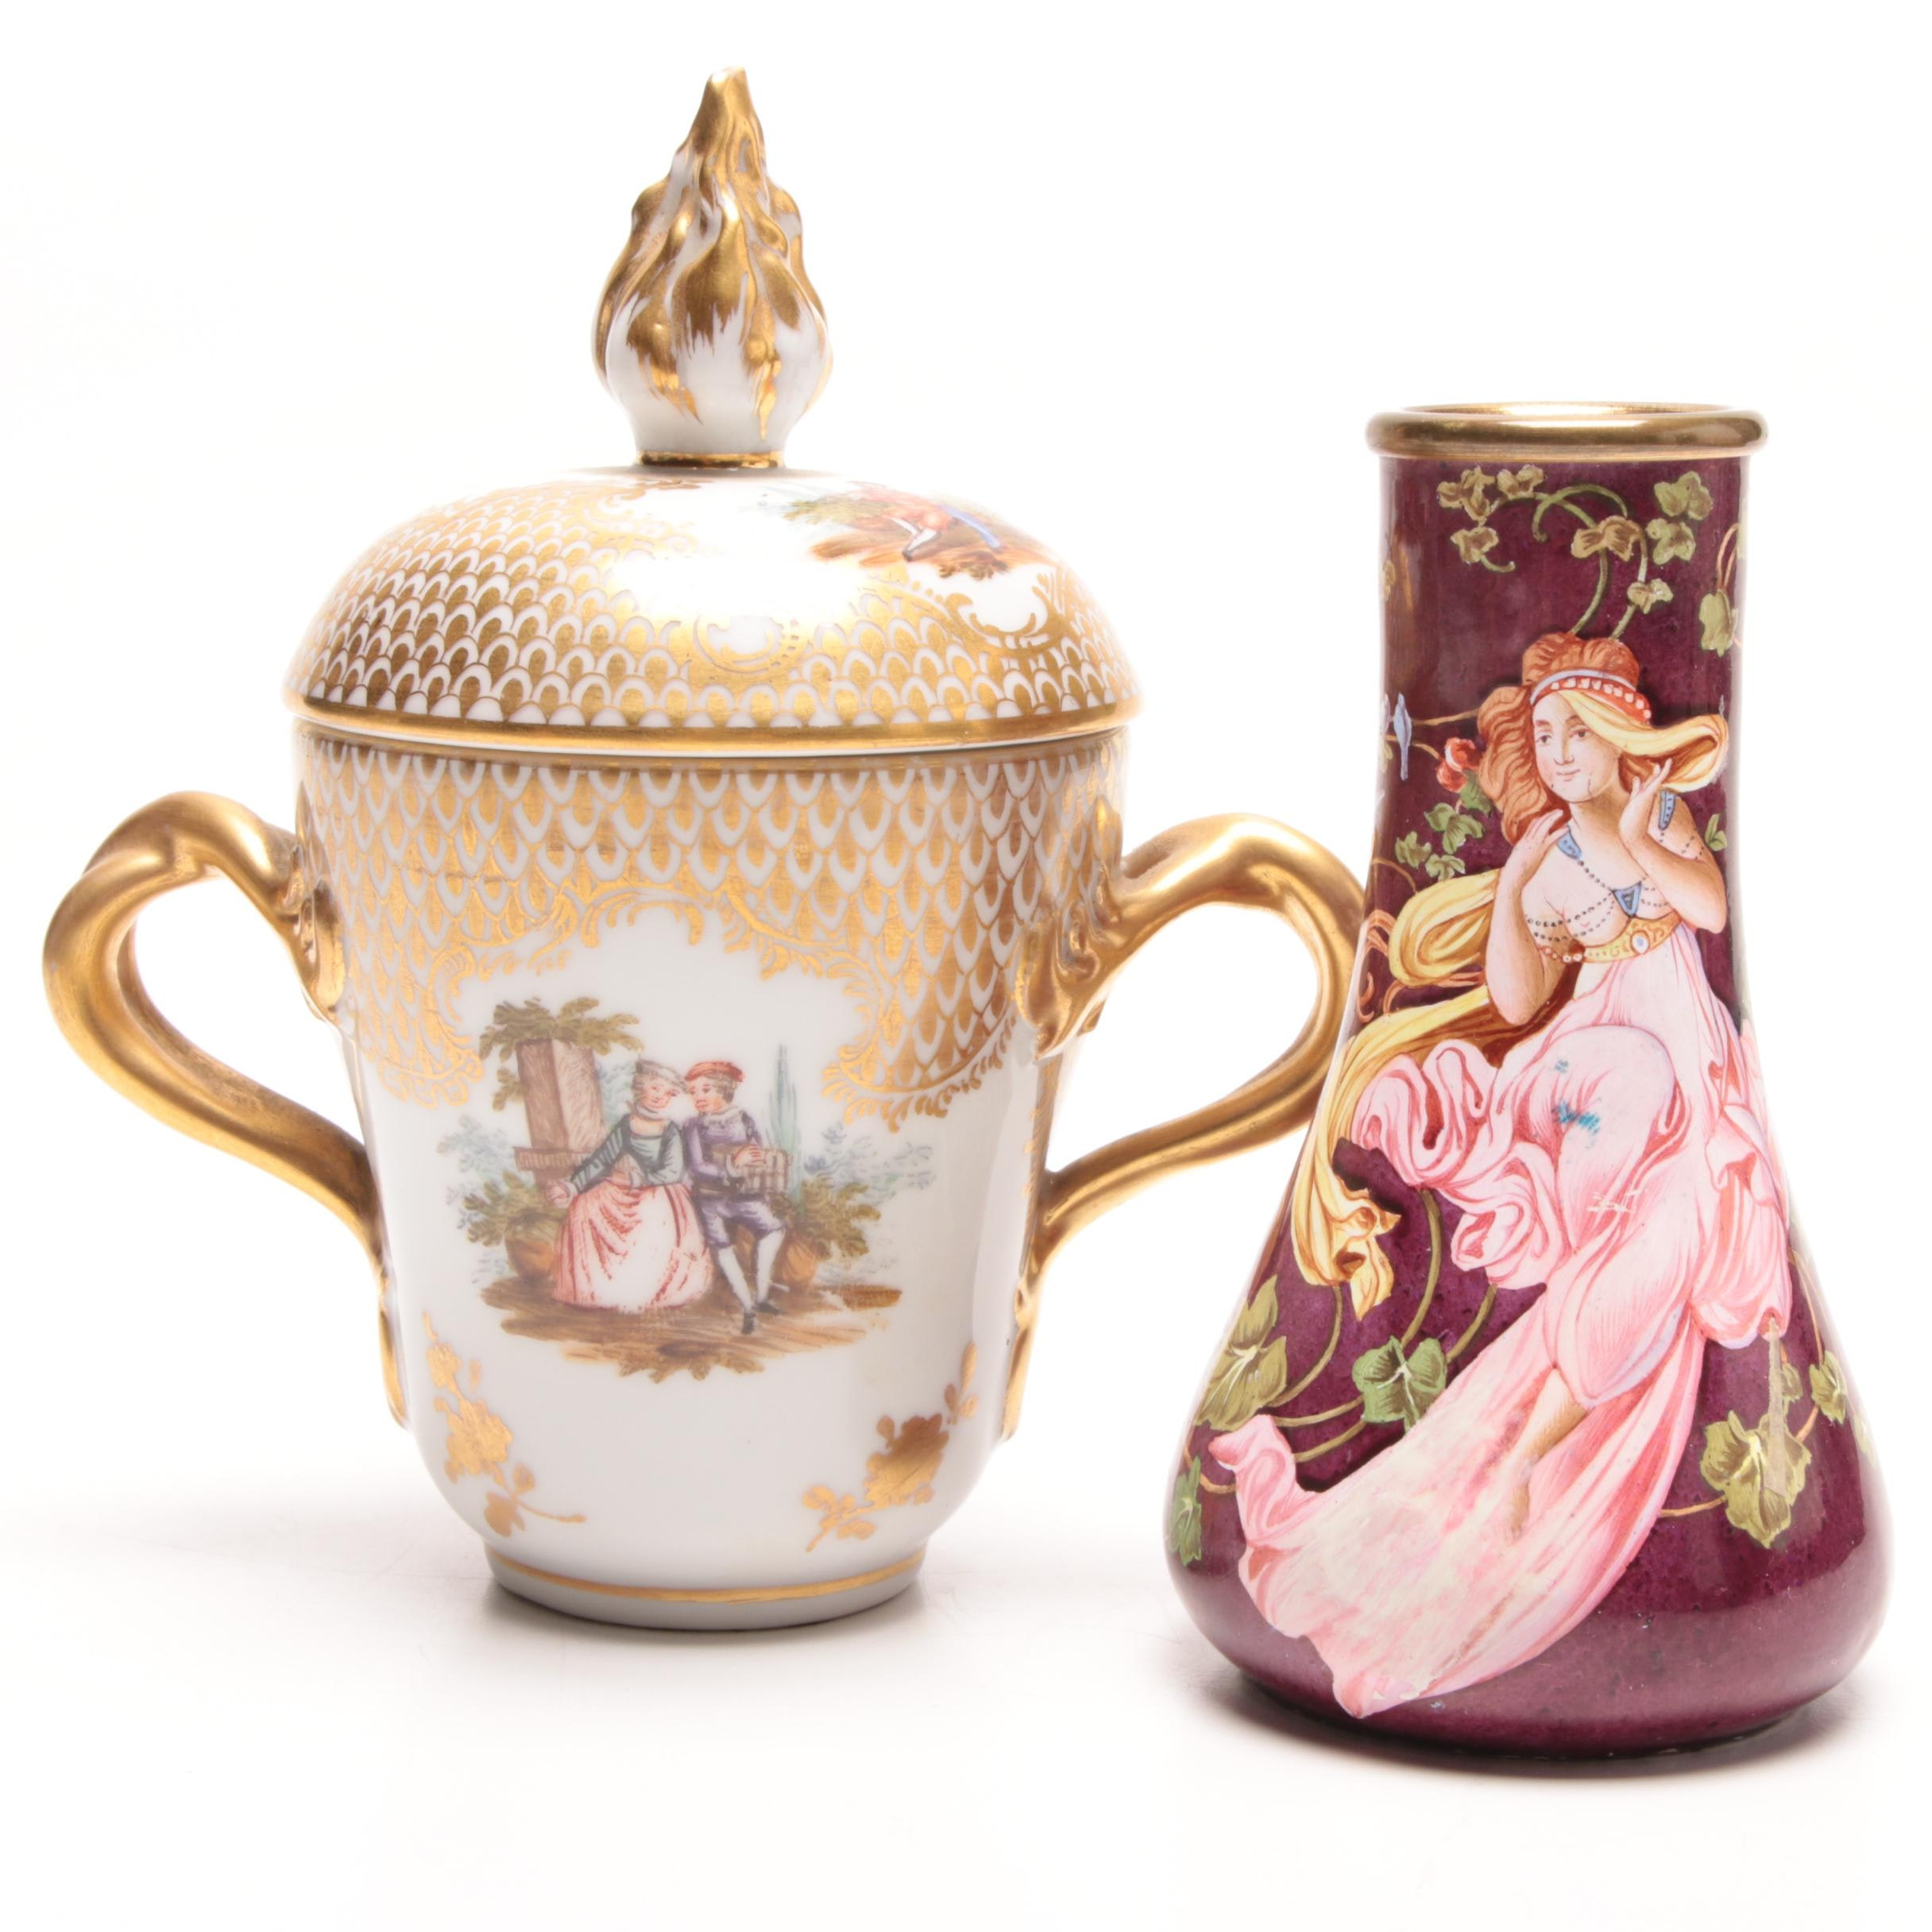 Hand-Painted Brass and Ceramic Vase and Porcelain Two-Handled Urn